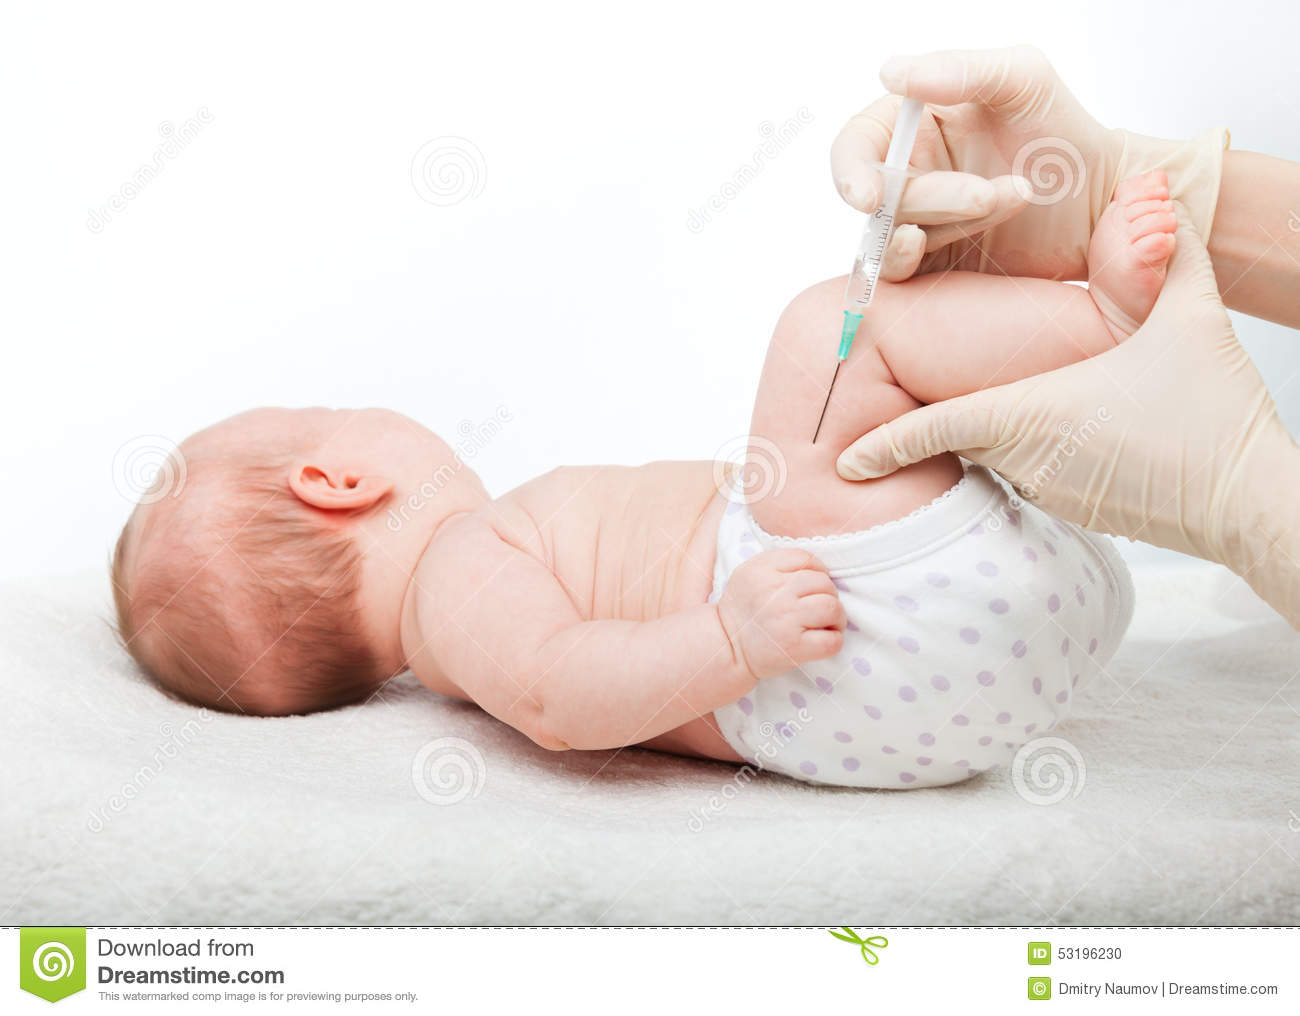 Infant Gets An Injection Stock Photo - Image: 53196230